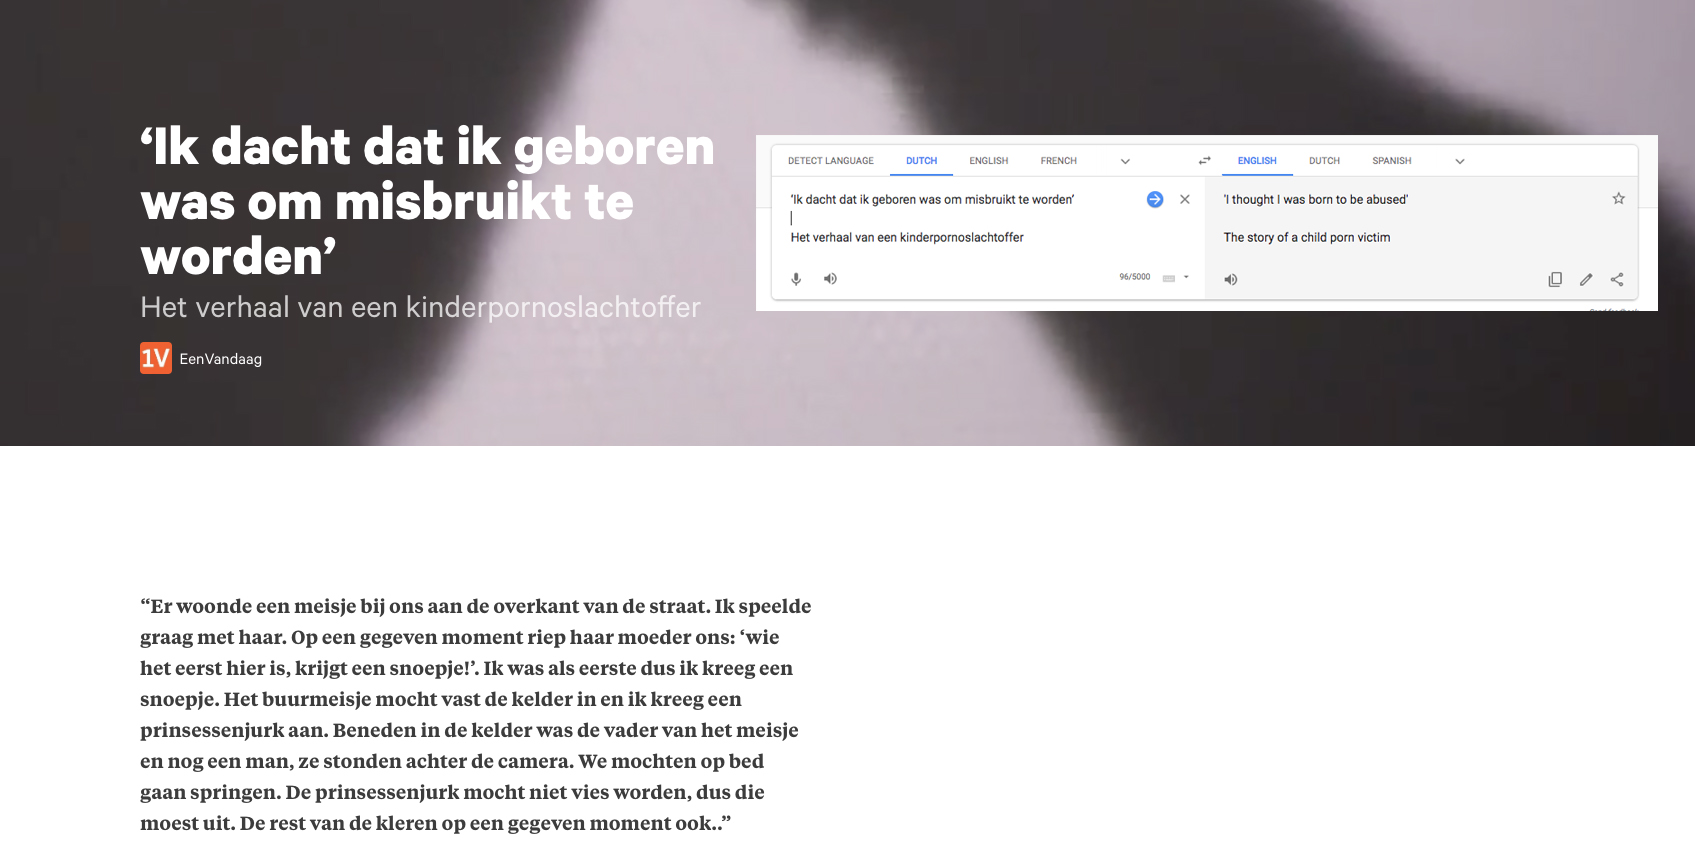 Example of a  Dutch article  in which the word 'abuse' is used to refer to child sexual abuse.